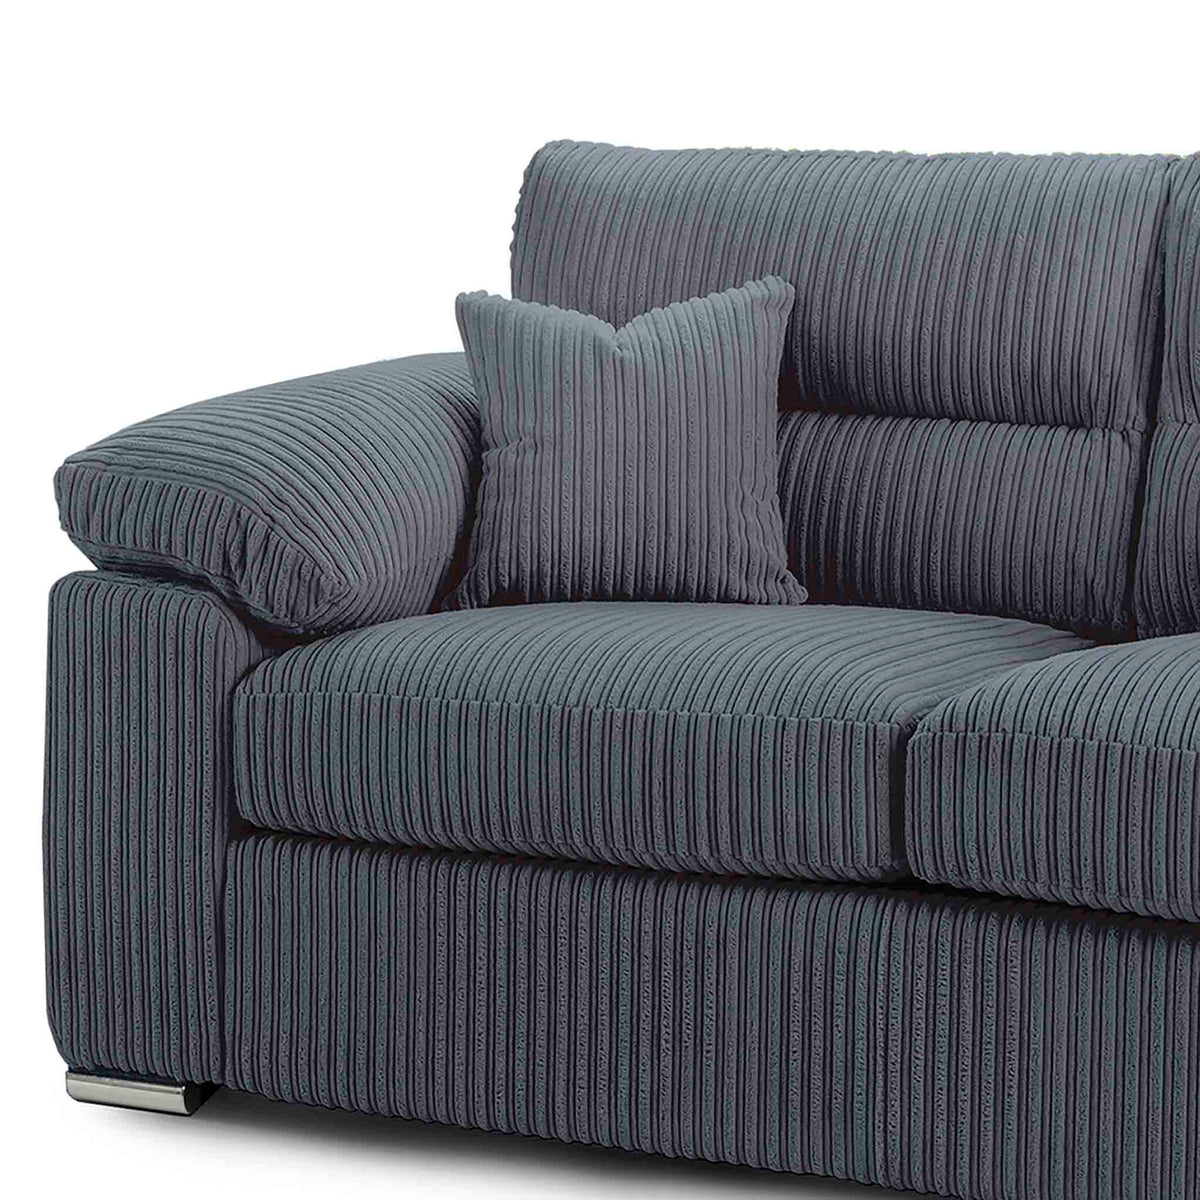 matching accent cushions feature with the Amalfi 2 Seater Fabric Sofa